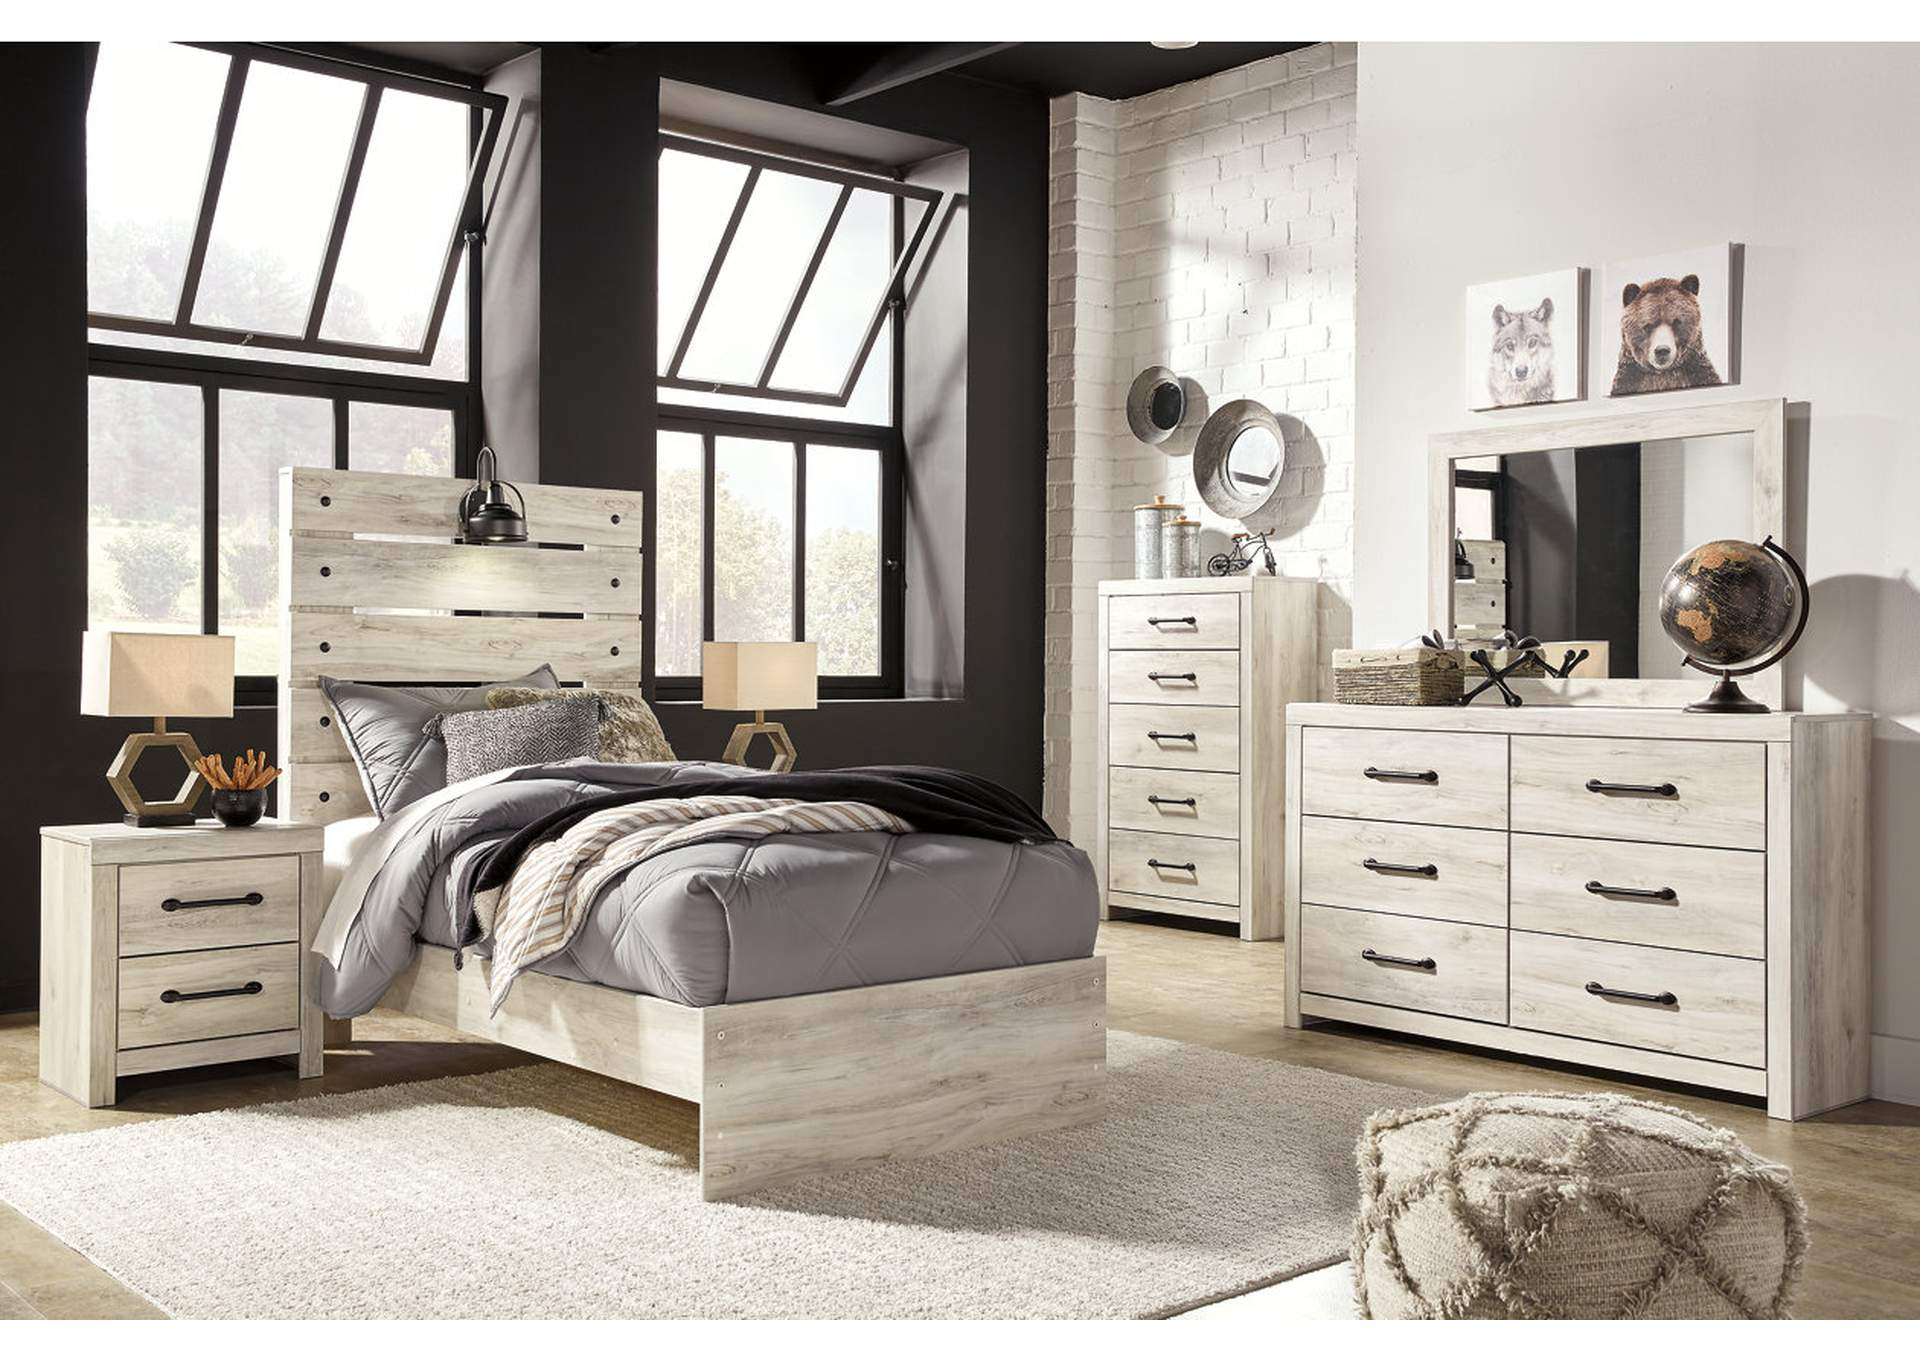 Cambeck Twin Panel Bed w/Dresser and Mirror,Signature Design By Ashley